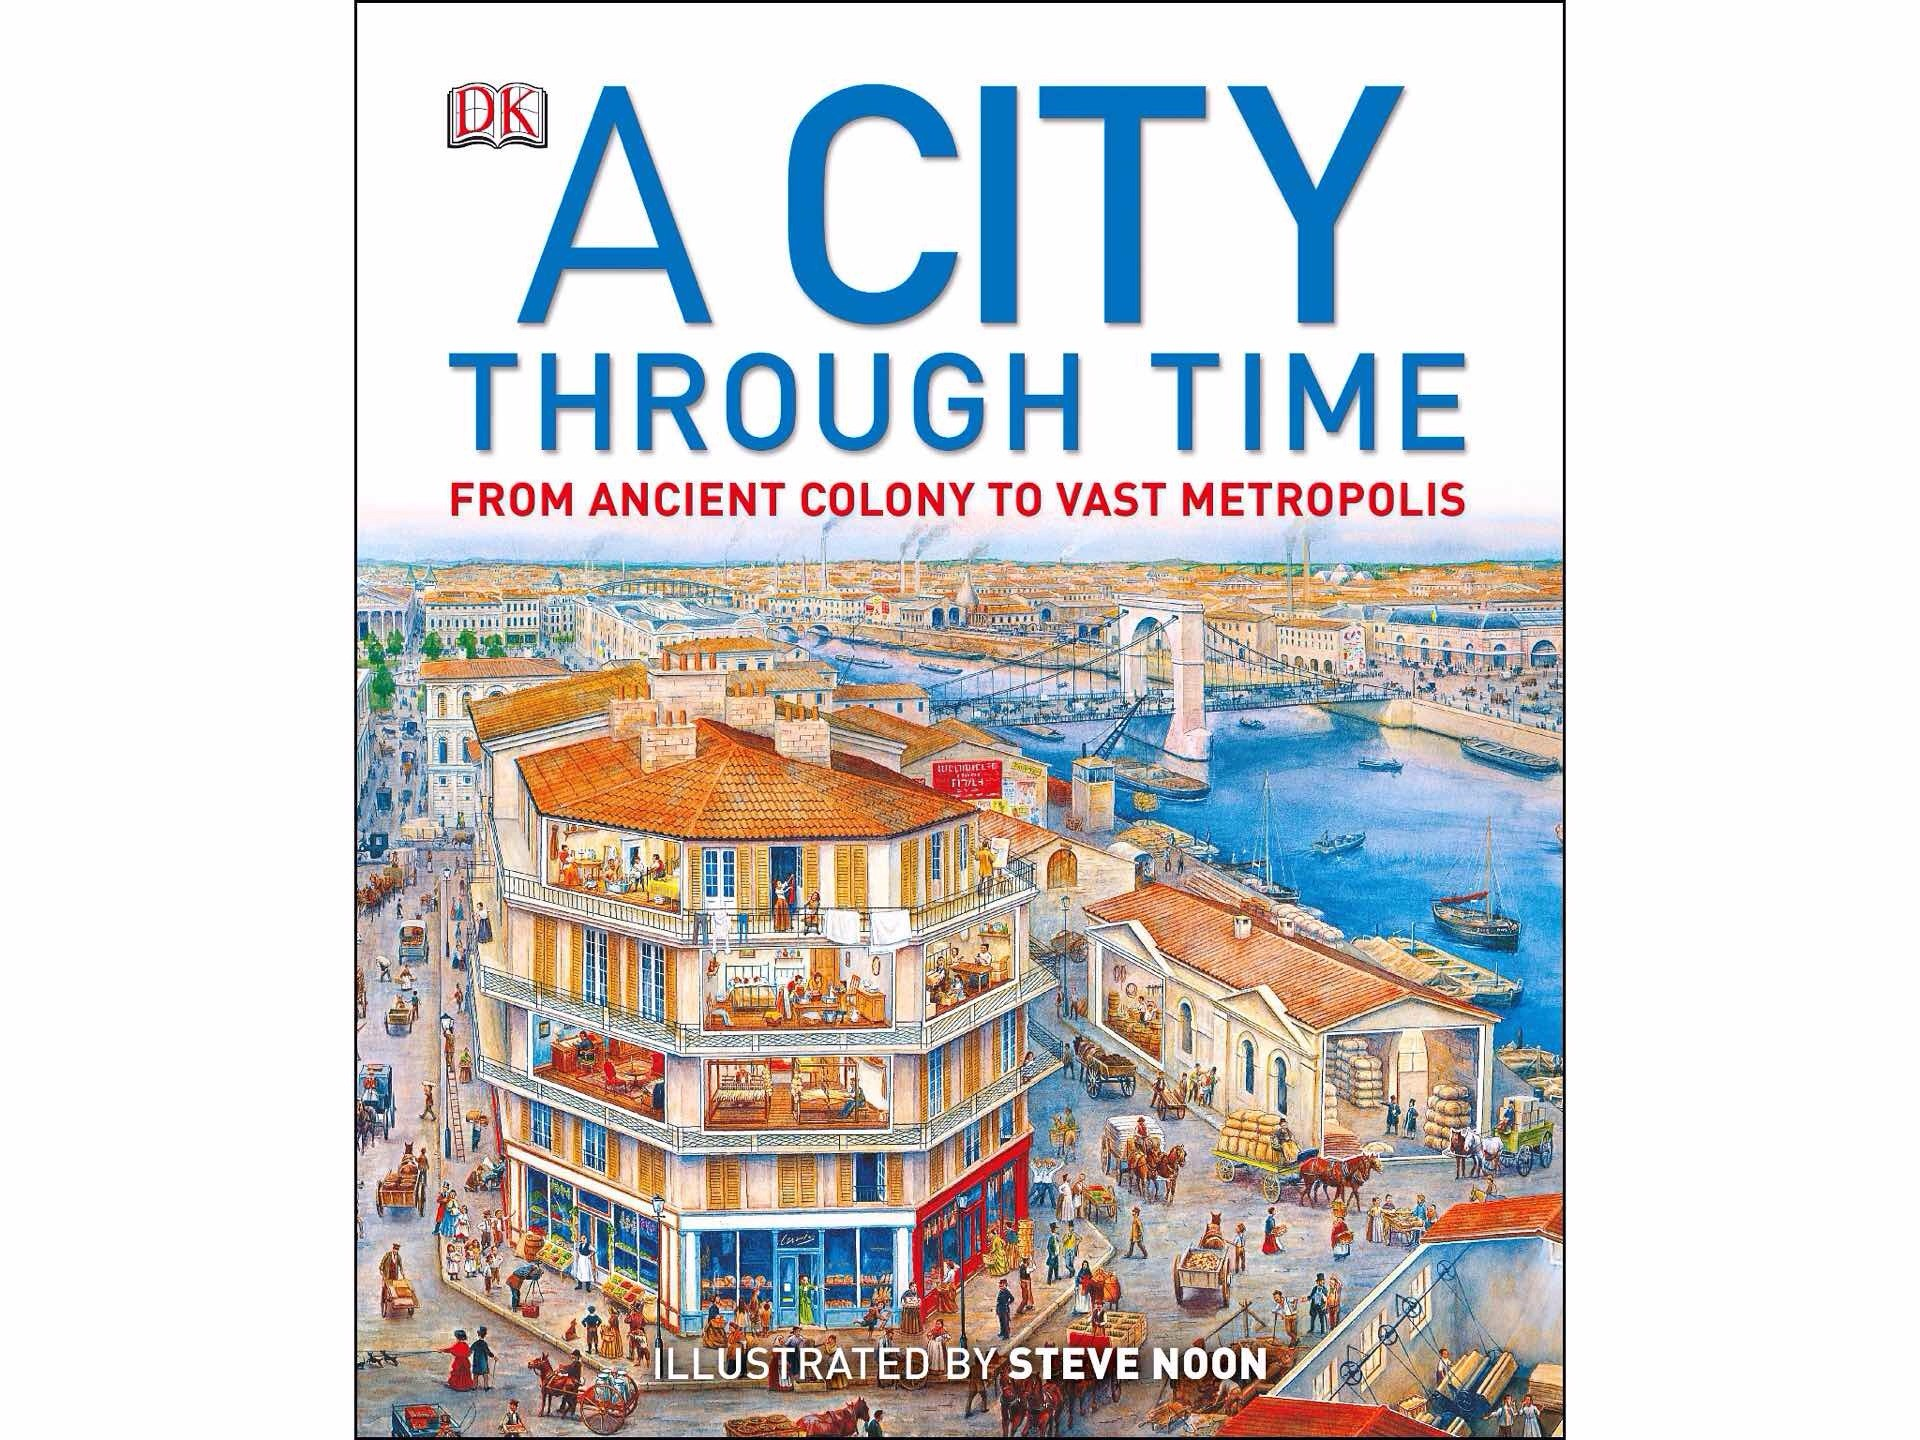 A City Through Time From Ancient To Vast Metropolis By Philip Steele Illustrated